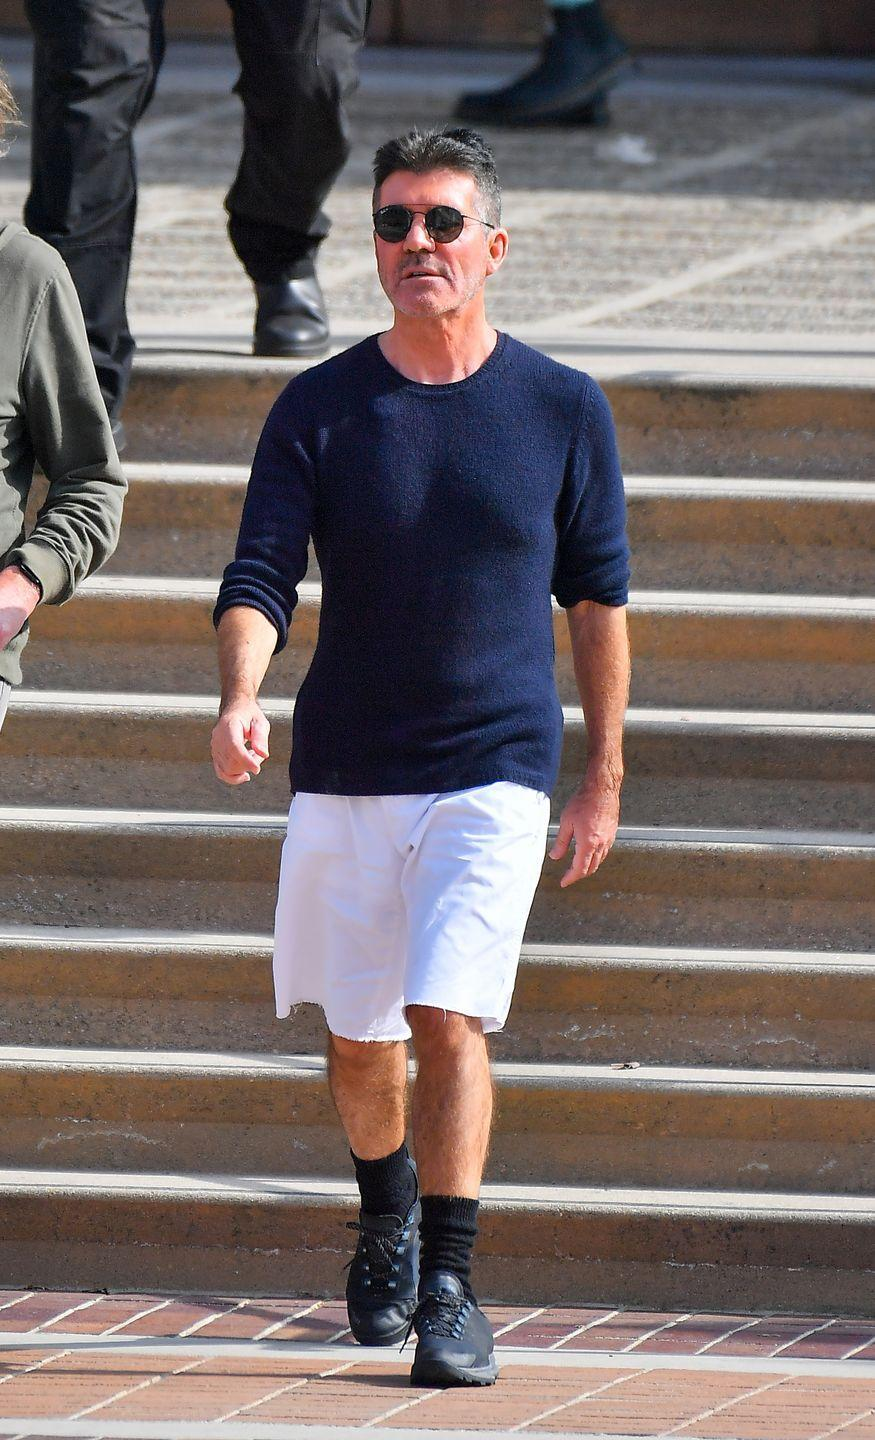 """<p>In 2019, Simon Cowell revealed that he lost about <a href=""""https://www.prevention.com/weight-loss/a27889059/simon-cowell-weight-loss-diet/"""" rel=""""nofollow noopener"""" target=""""_blank"""" data-ylk=""""slk:20 pounds"""" class=""""link rapid-noclick-resp"""">20 pounds</a> in an effort to be healthier, which was inspired by a scary fall he took in 2017 due to low blood pressure. Since then, the <em>America's Got Talent </em>judge <a href=""""https://www.prevention.com/food-nutrition/healthy-eating/a29088480/no-dairy-diet/"""" rel=""""nofollow noopener"""" target=""""_blank"""" data-ylk=""""slk:stopped eating dairy"""" class=""""link rapid-noclick-resp"""">stopped eating dairy</a>, wheat, and sugar, and became a <a href=""""https://www.prevention.com/weight-loss/diets/a22995235/vegan-diet-weight-loss/"""" rel=""""nofollow noopener"""" target=""""_blank"""" data-ylk=""""slk:vegan"""" class=""""link rapid-noclick-resp"""">vegan</a>. """"I cut out a lot of the stuff I shouldn't have been eating and that was primarily meat, dairy, wheat, sugar—those were the four main things,"""" he said in an interview with <em><a href=""""https://www.thesun.co.uk/tvandshowbiz/8924018/simon-cowell-vegan-60th-birthday/"""" rel=""""nofollow noopener"""" target=""""_blank"""" data-ylk=""""slk:The Sun"""" class=""""link rapid-noclick-resp"""">The Sun</a>.</em><br></p>"""